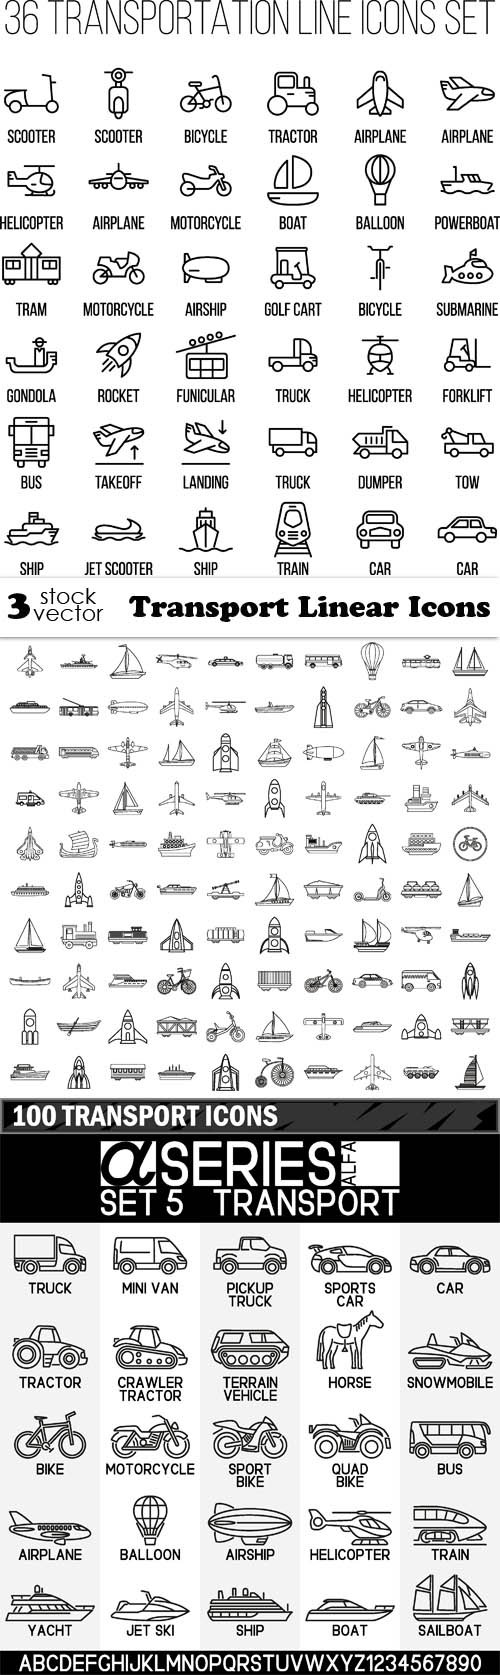 Vectors - Transport Linear Icons